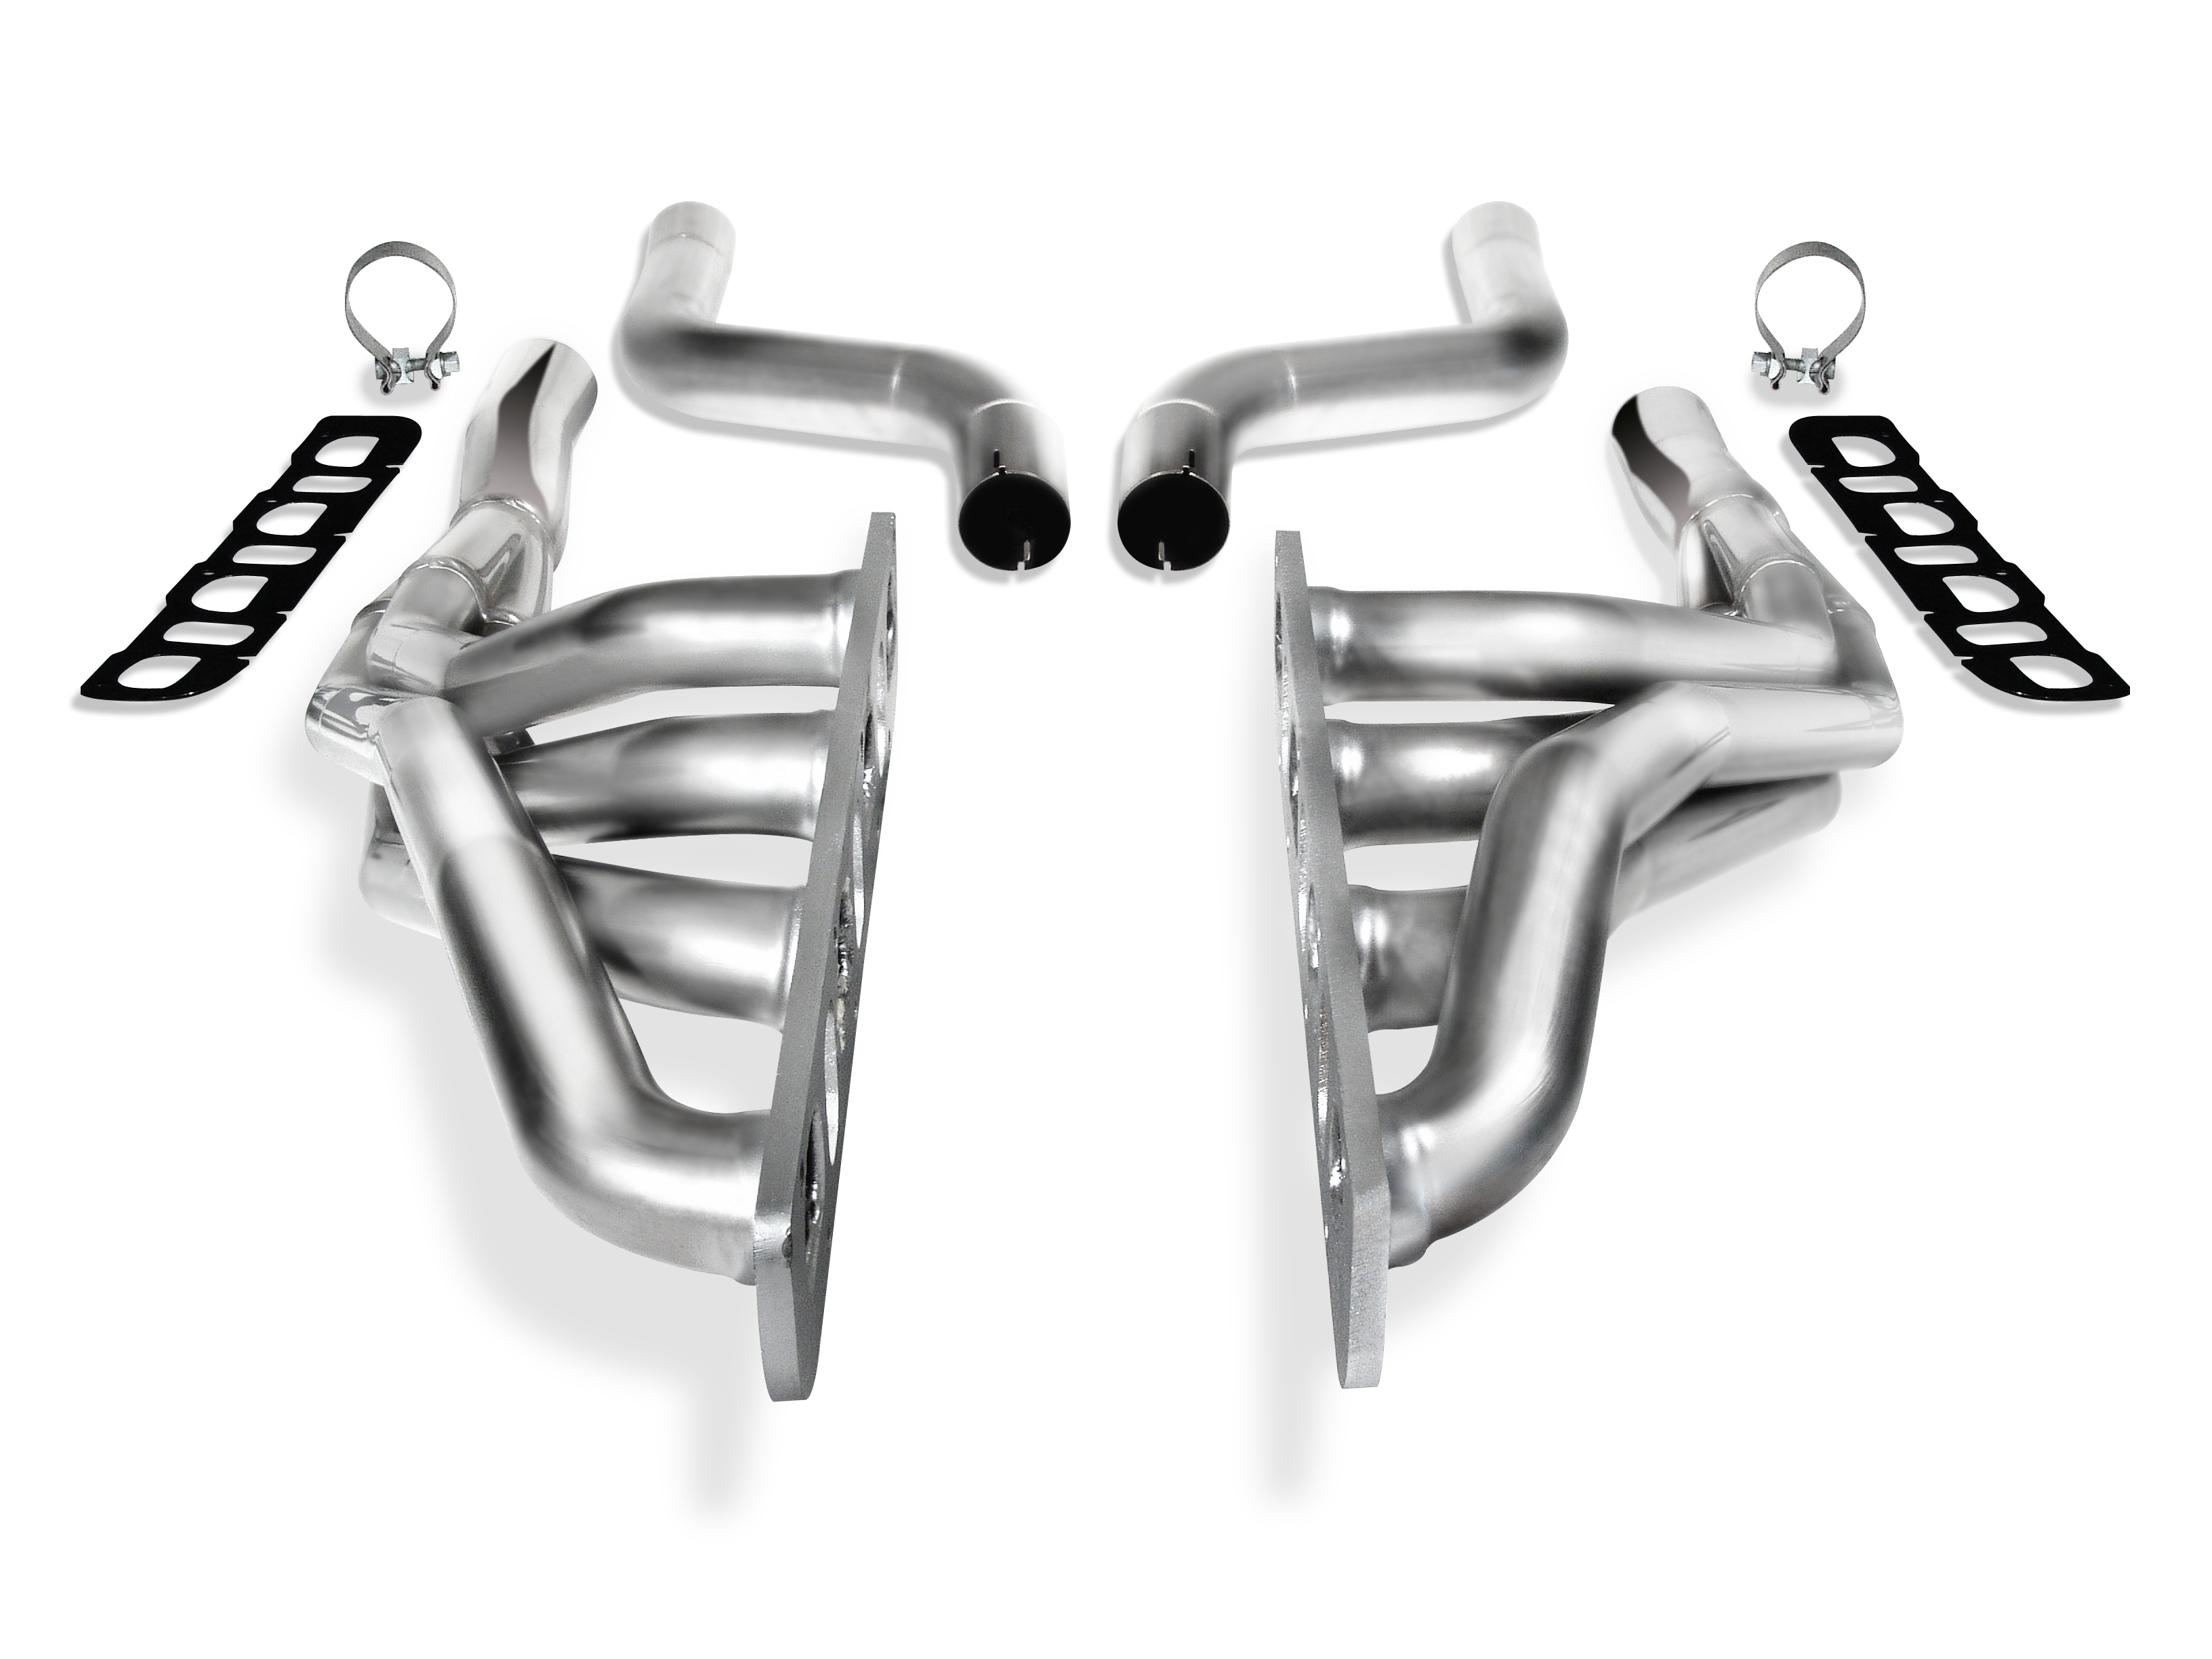 2005+ Dodge Challenger/Charger/Magnum/300C SRT8 6.1L/6.4L V8 Borla XR-1 Stainless Steel Long Tube Headers - Offroad